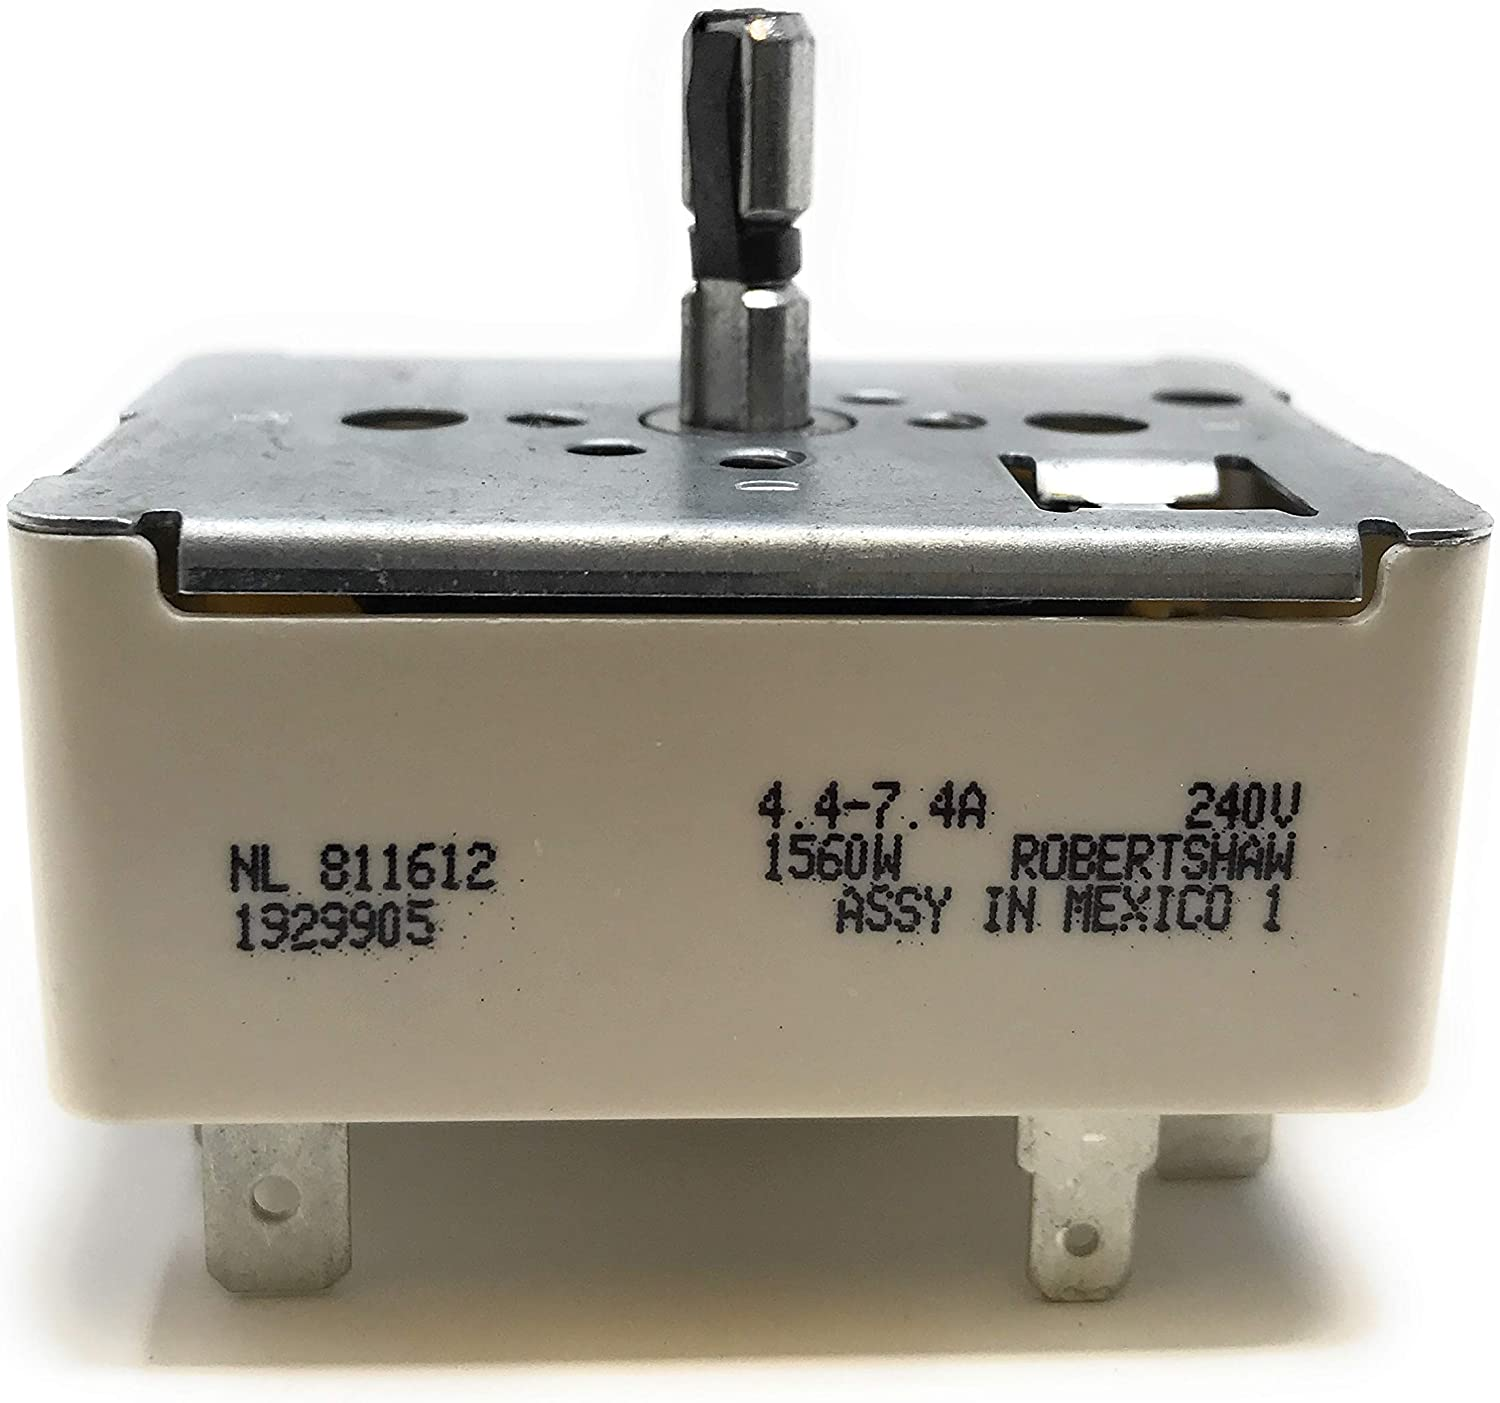 """Details about  /WB24T10029 GE electr PS236754 range 6/"""" surface burner switch 1560w"""